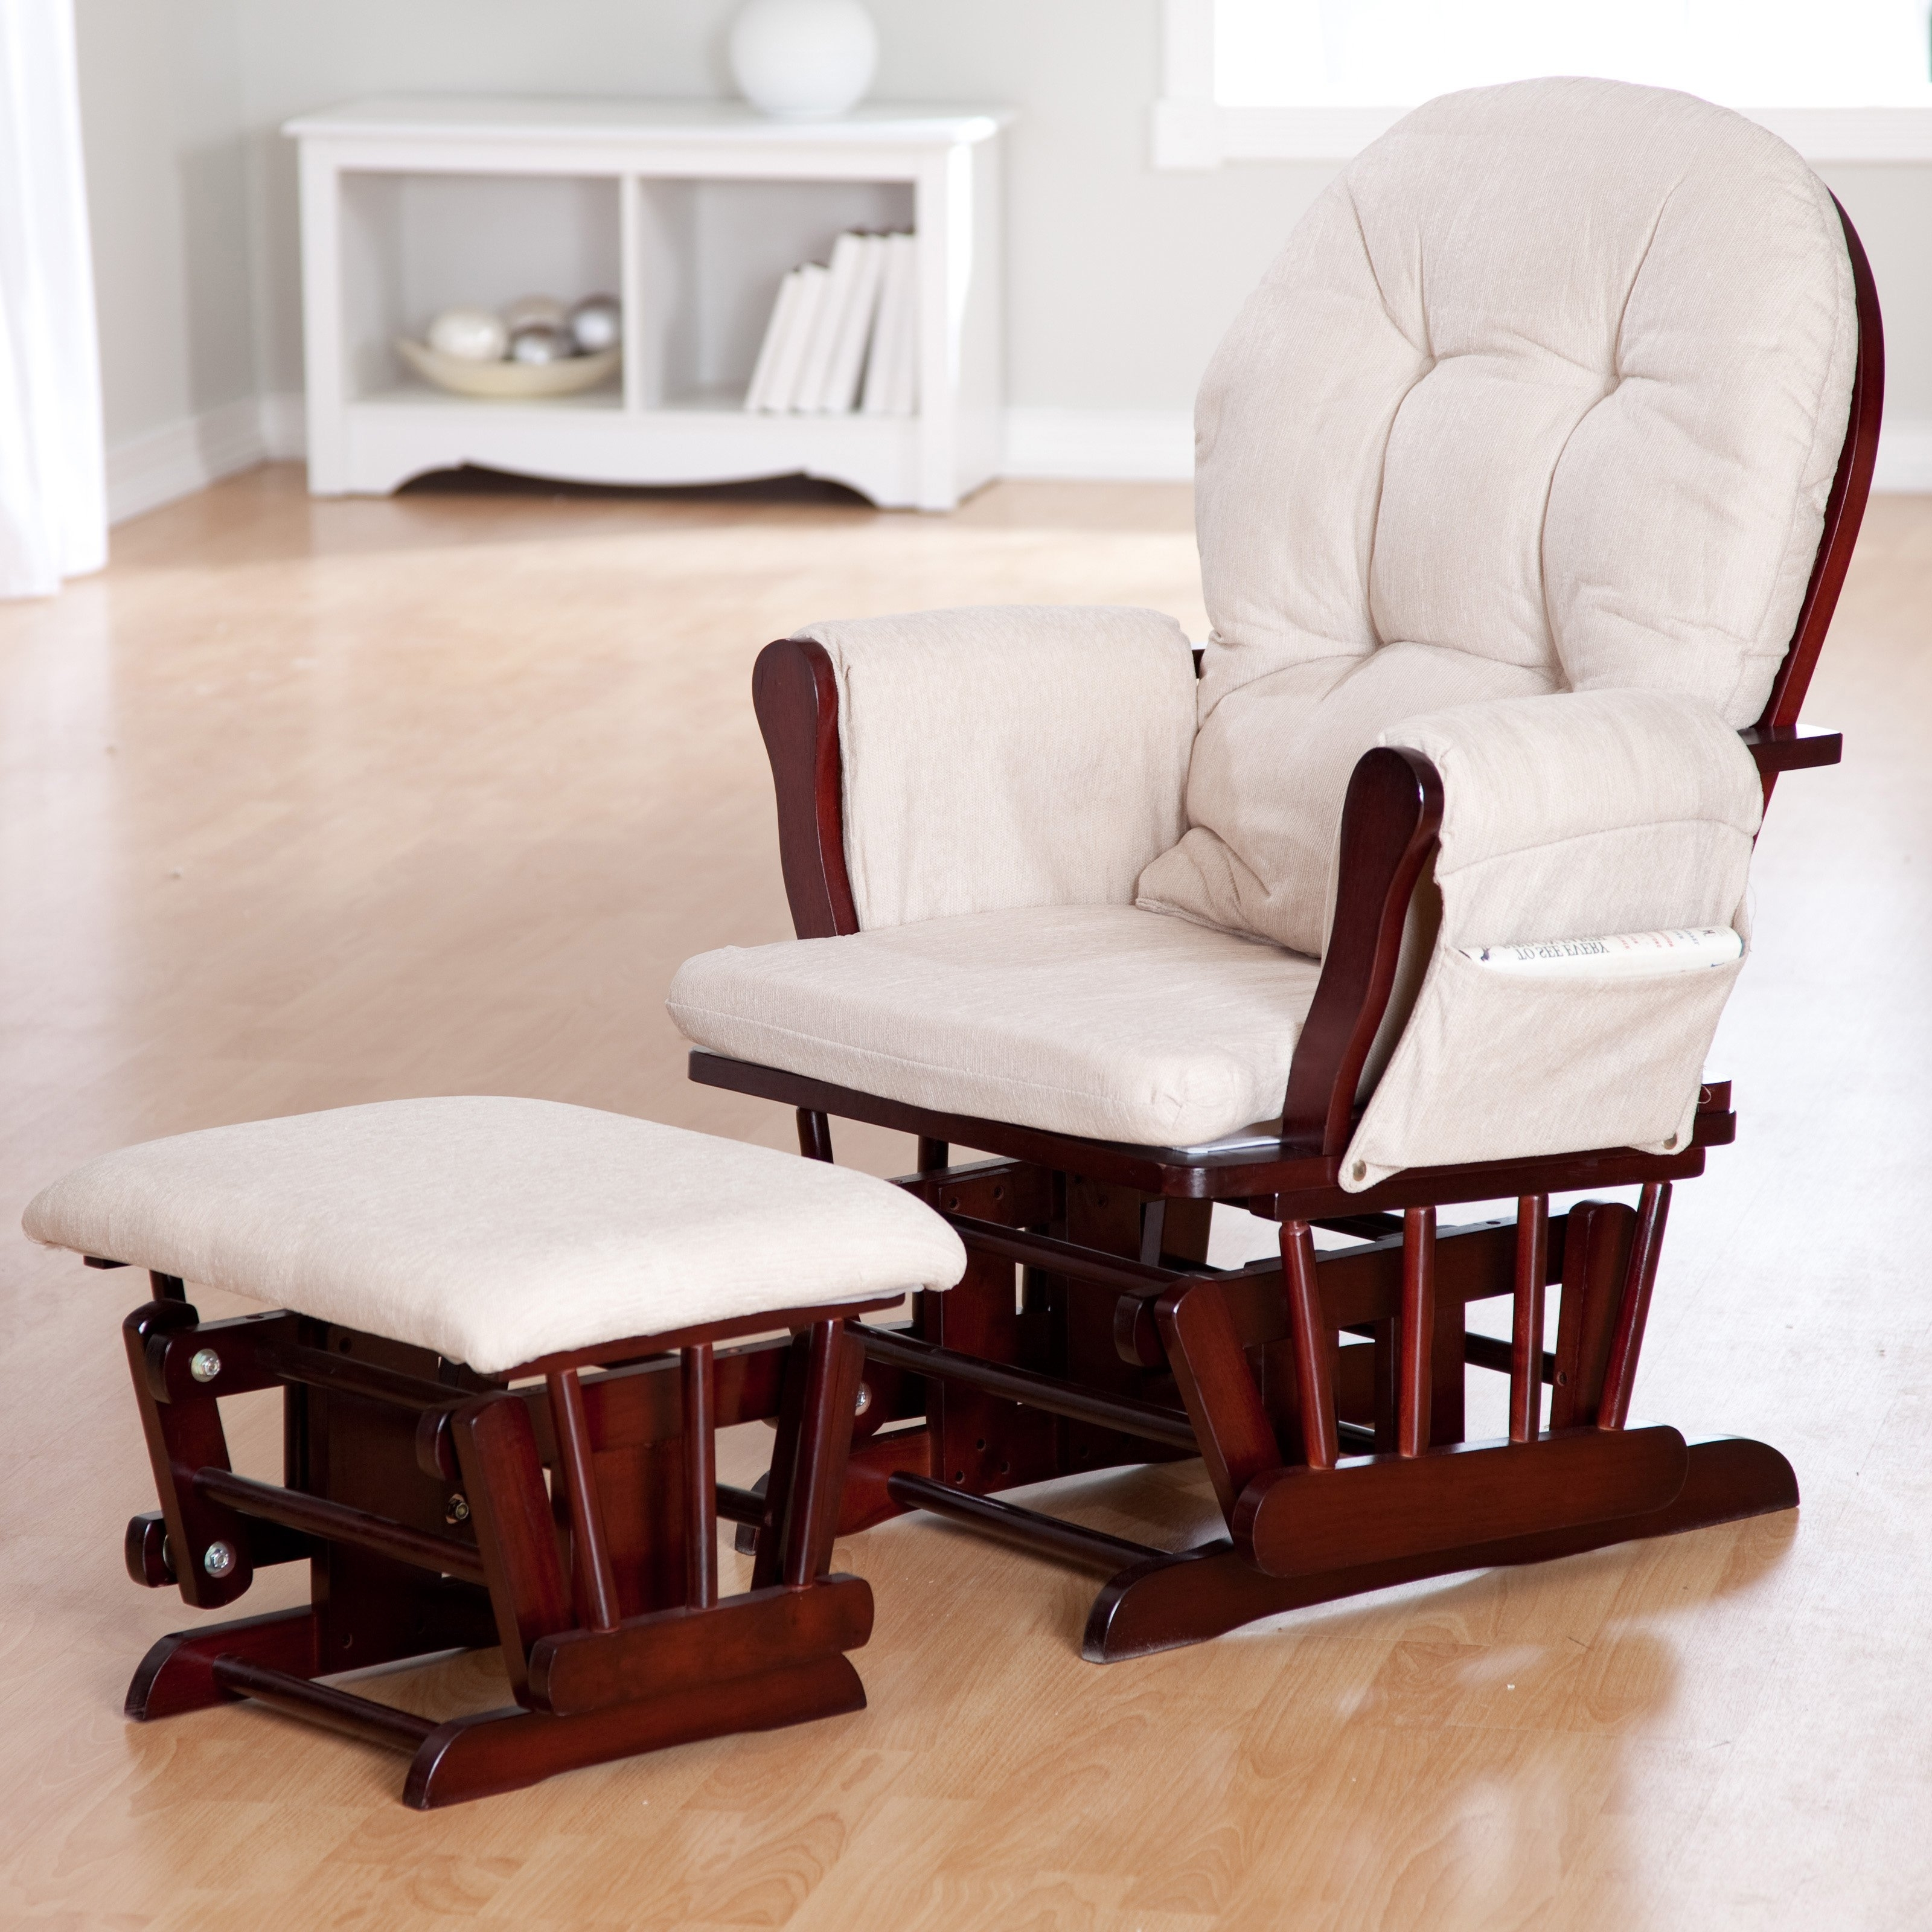 Rocking Chairs With Ottoman Intended For 2018 Ottomans : Recliners Rocking Chair With Ottoman For Sale Rockers And (View 8 of 15)